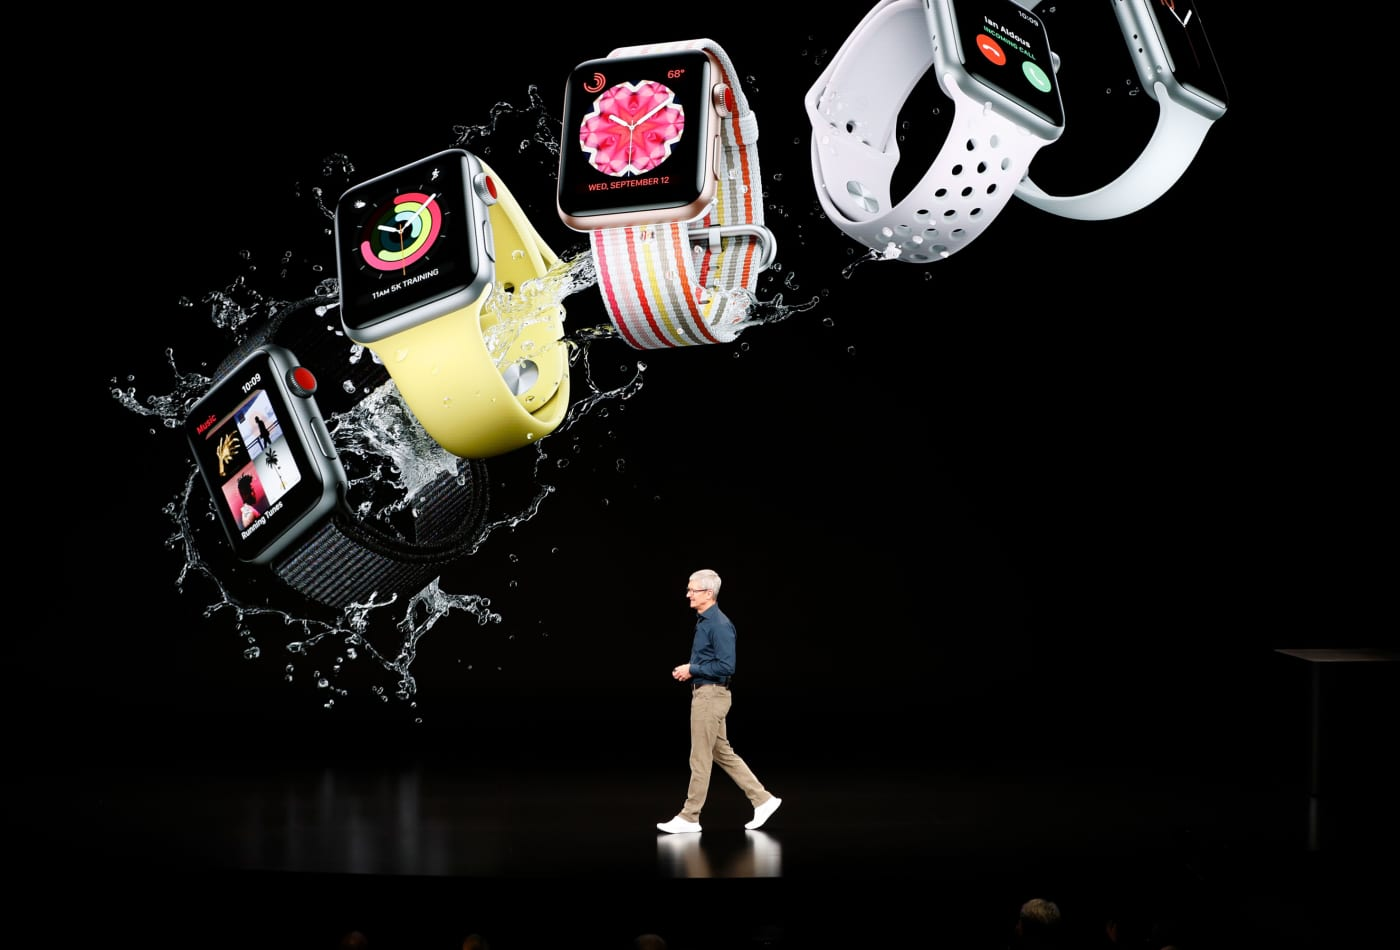 Apple and Eli Lilly are studying whether data from iPhones and Apple Watches can detect signs of dementia